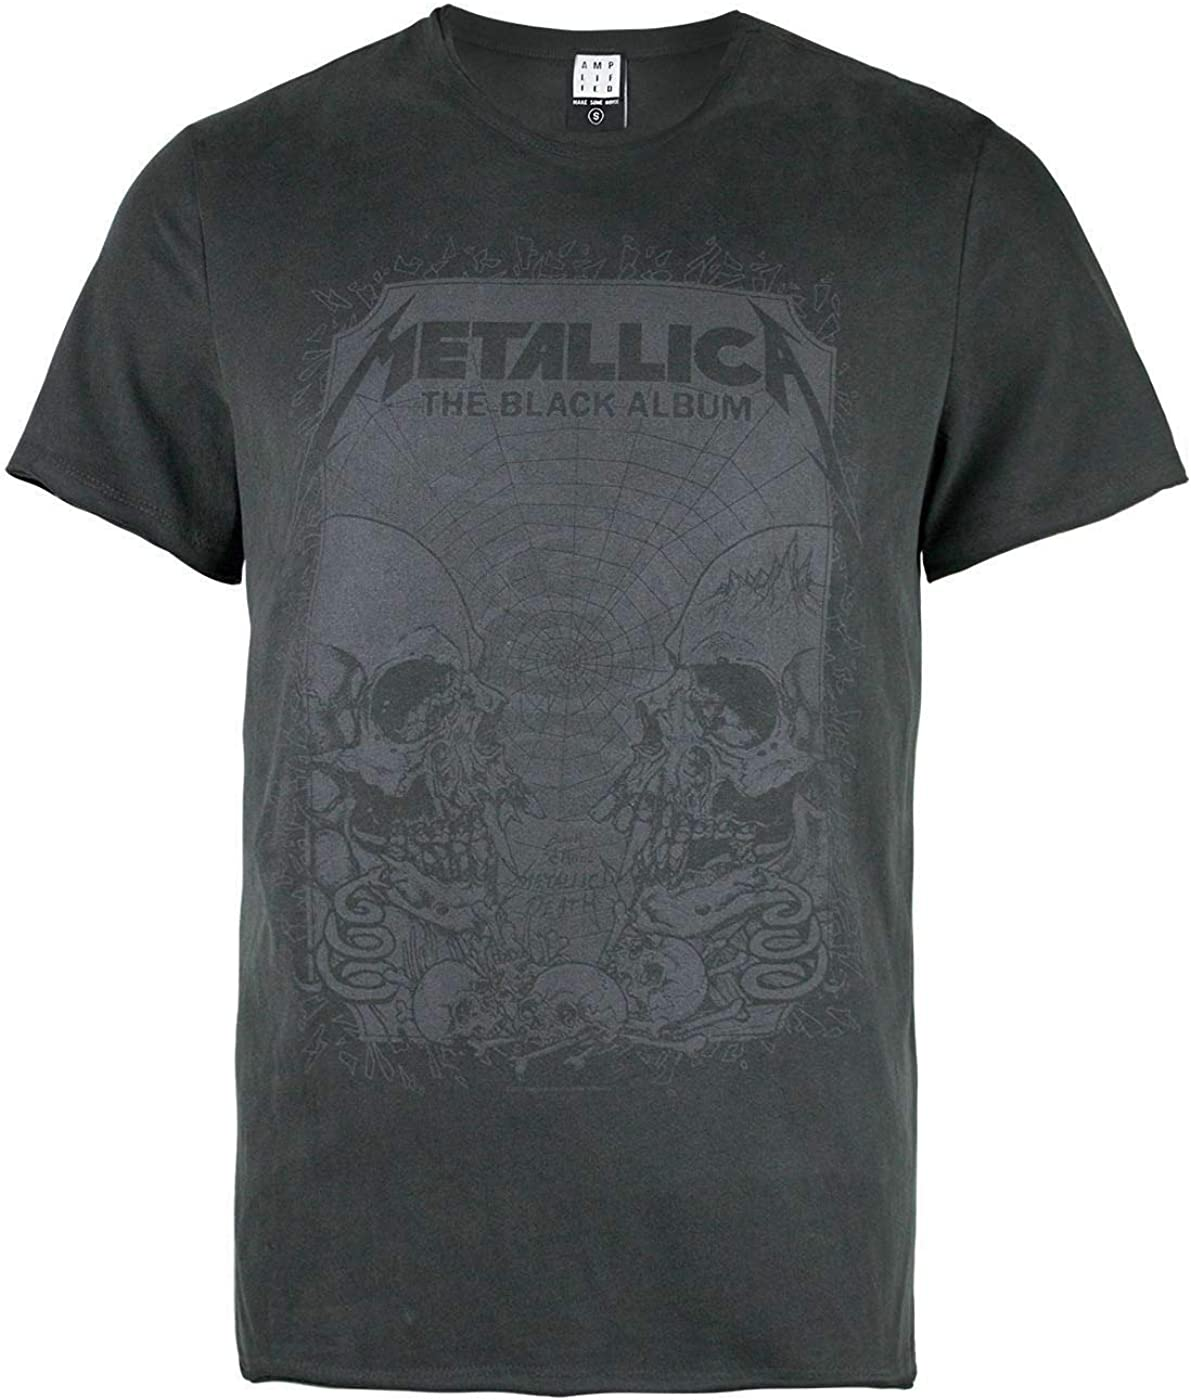 Amplified Metallica-The Black Album Camiseta para Hombre